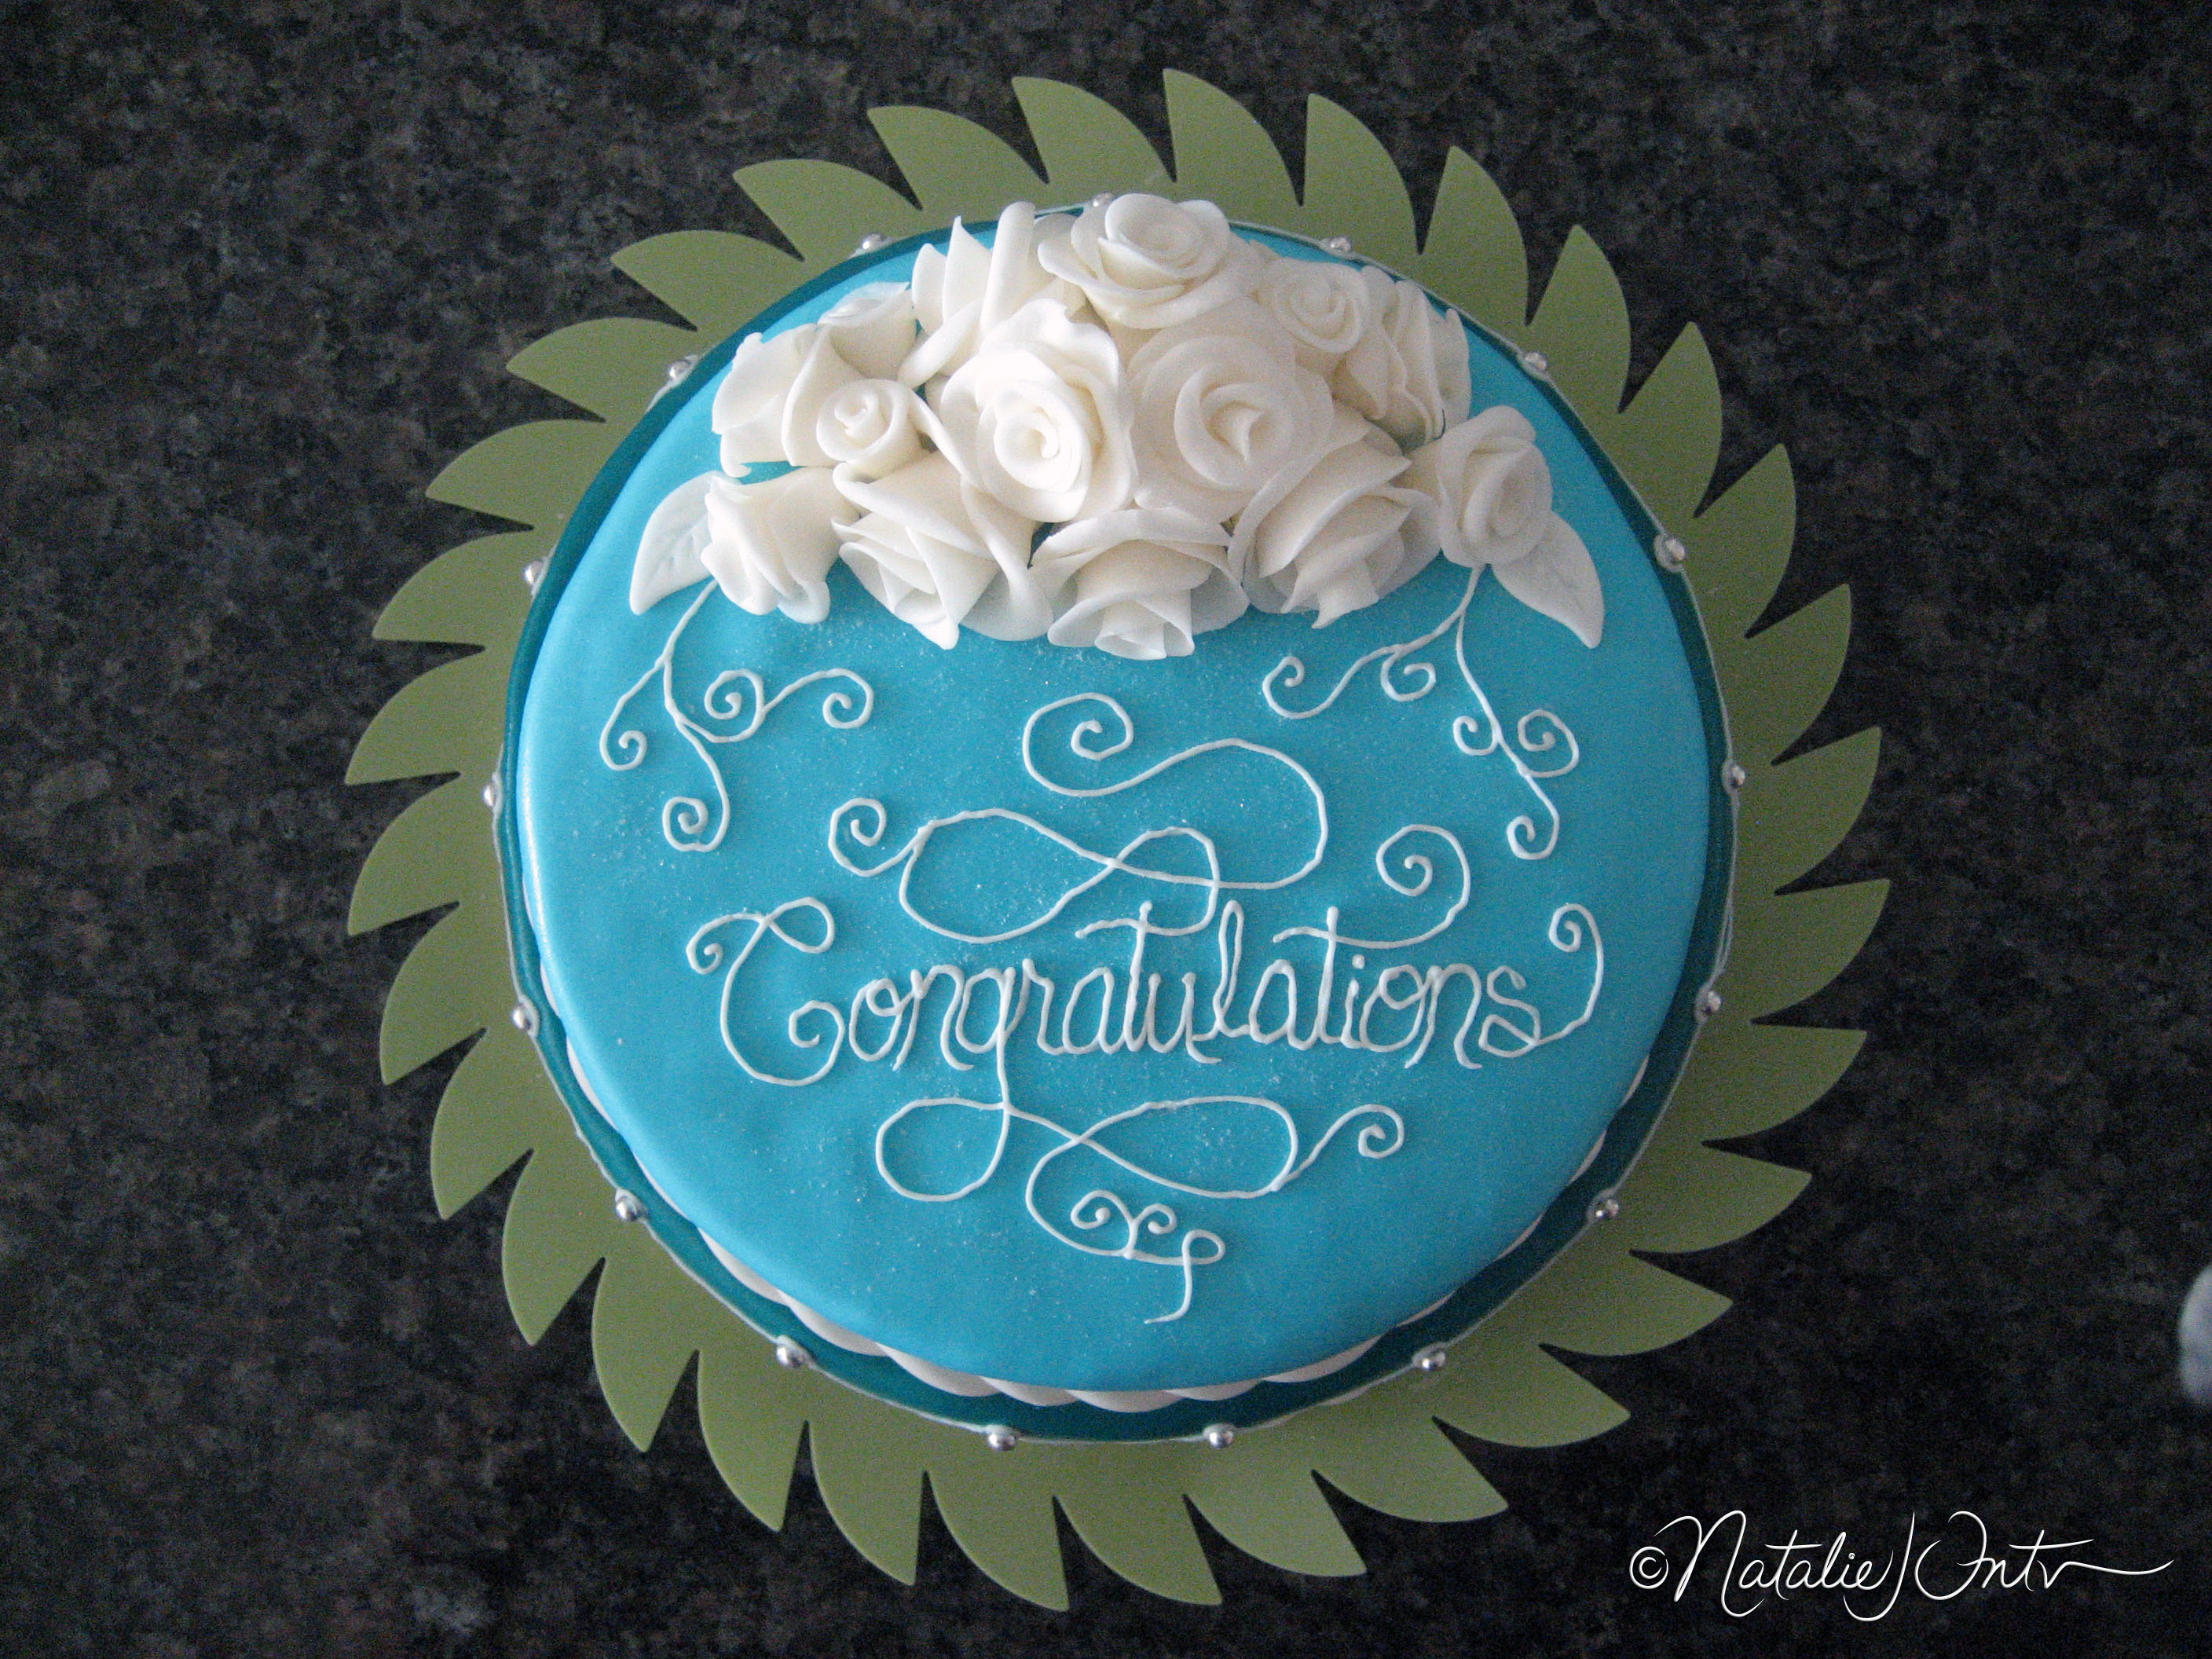 Congratulation Cake Images With Name : Congratulations Cake (with white roses) Natalie Intven